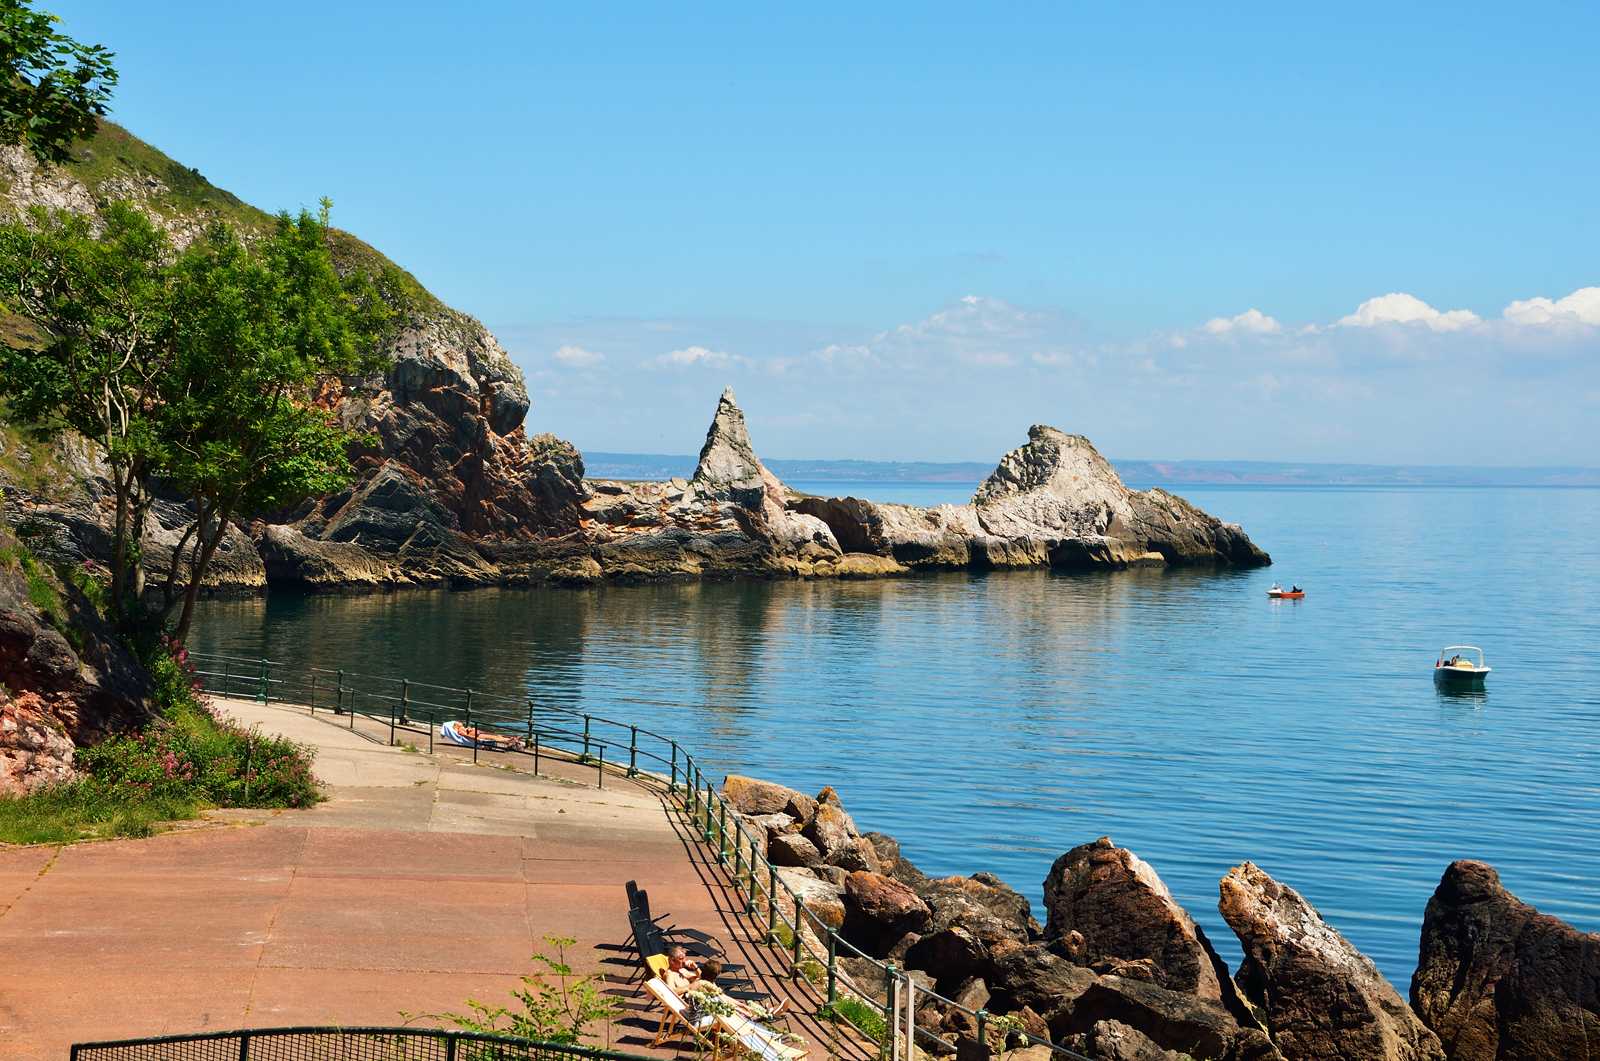 Short breaks in self catering accommodation in Torquay and The English Riviera.